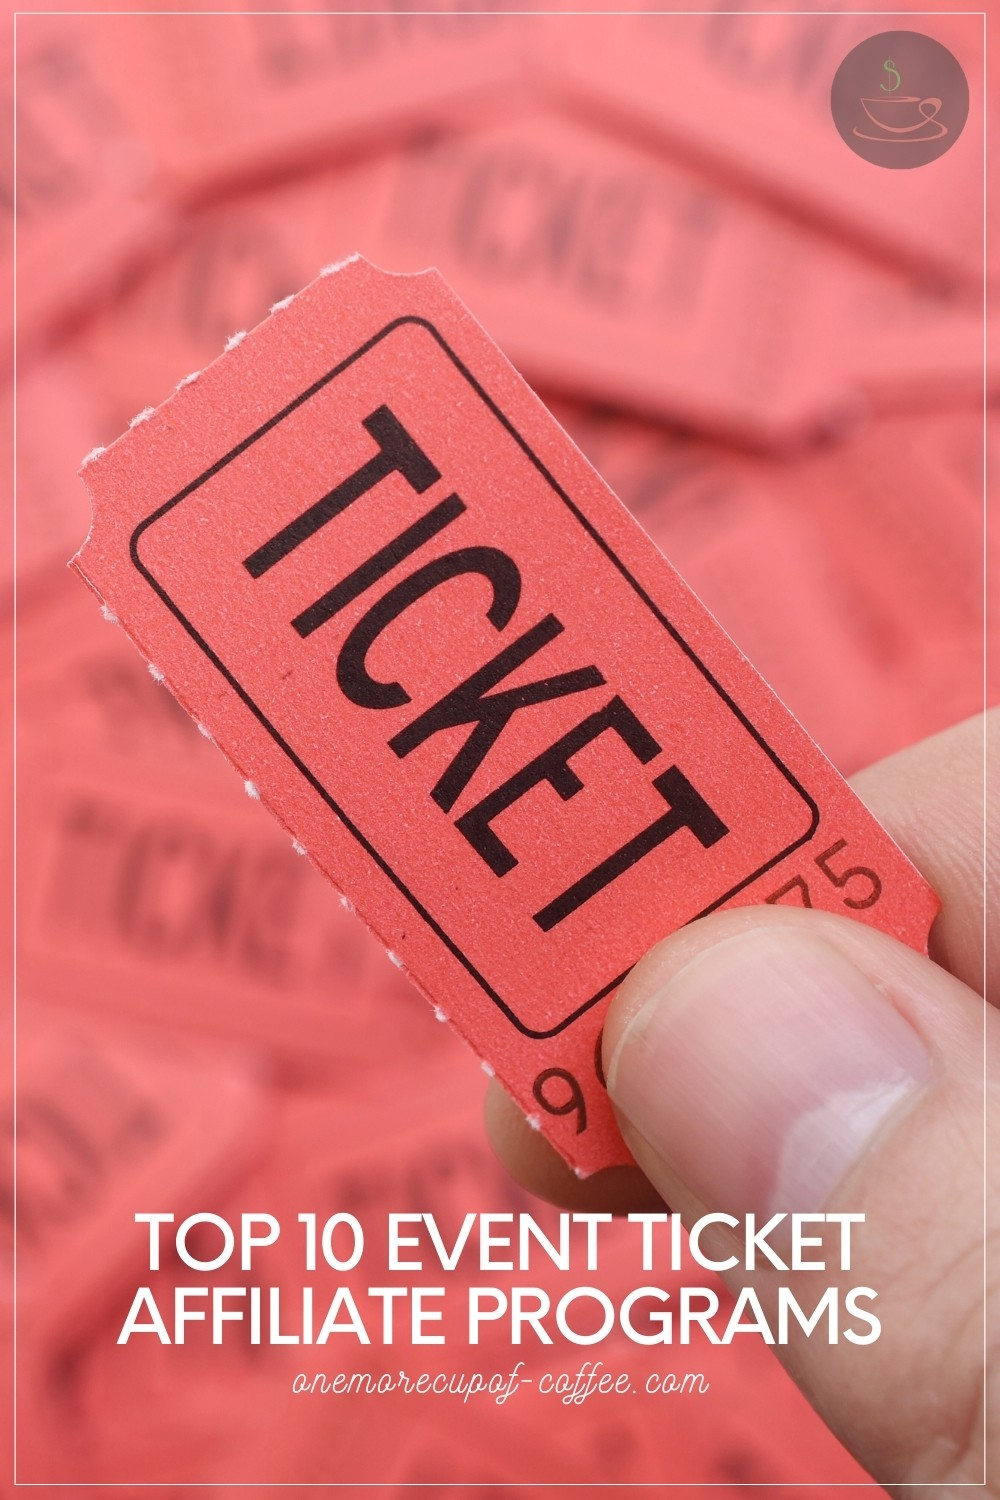 """a partial image of hand holding a small pink ticket with a blurred image of a pile of pink ticket at the back, with text overlay """"Top 10 Event Ticket Affiliate Programs"""""""